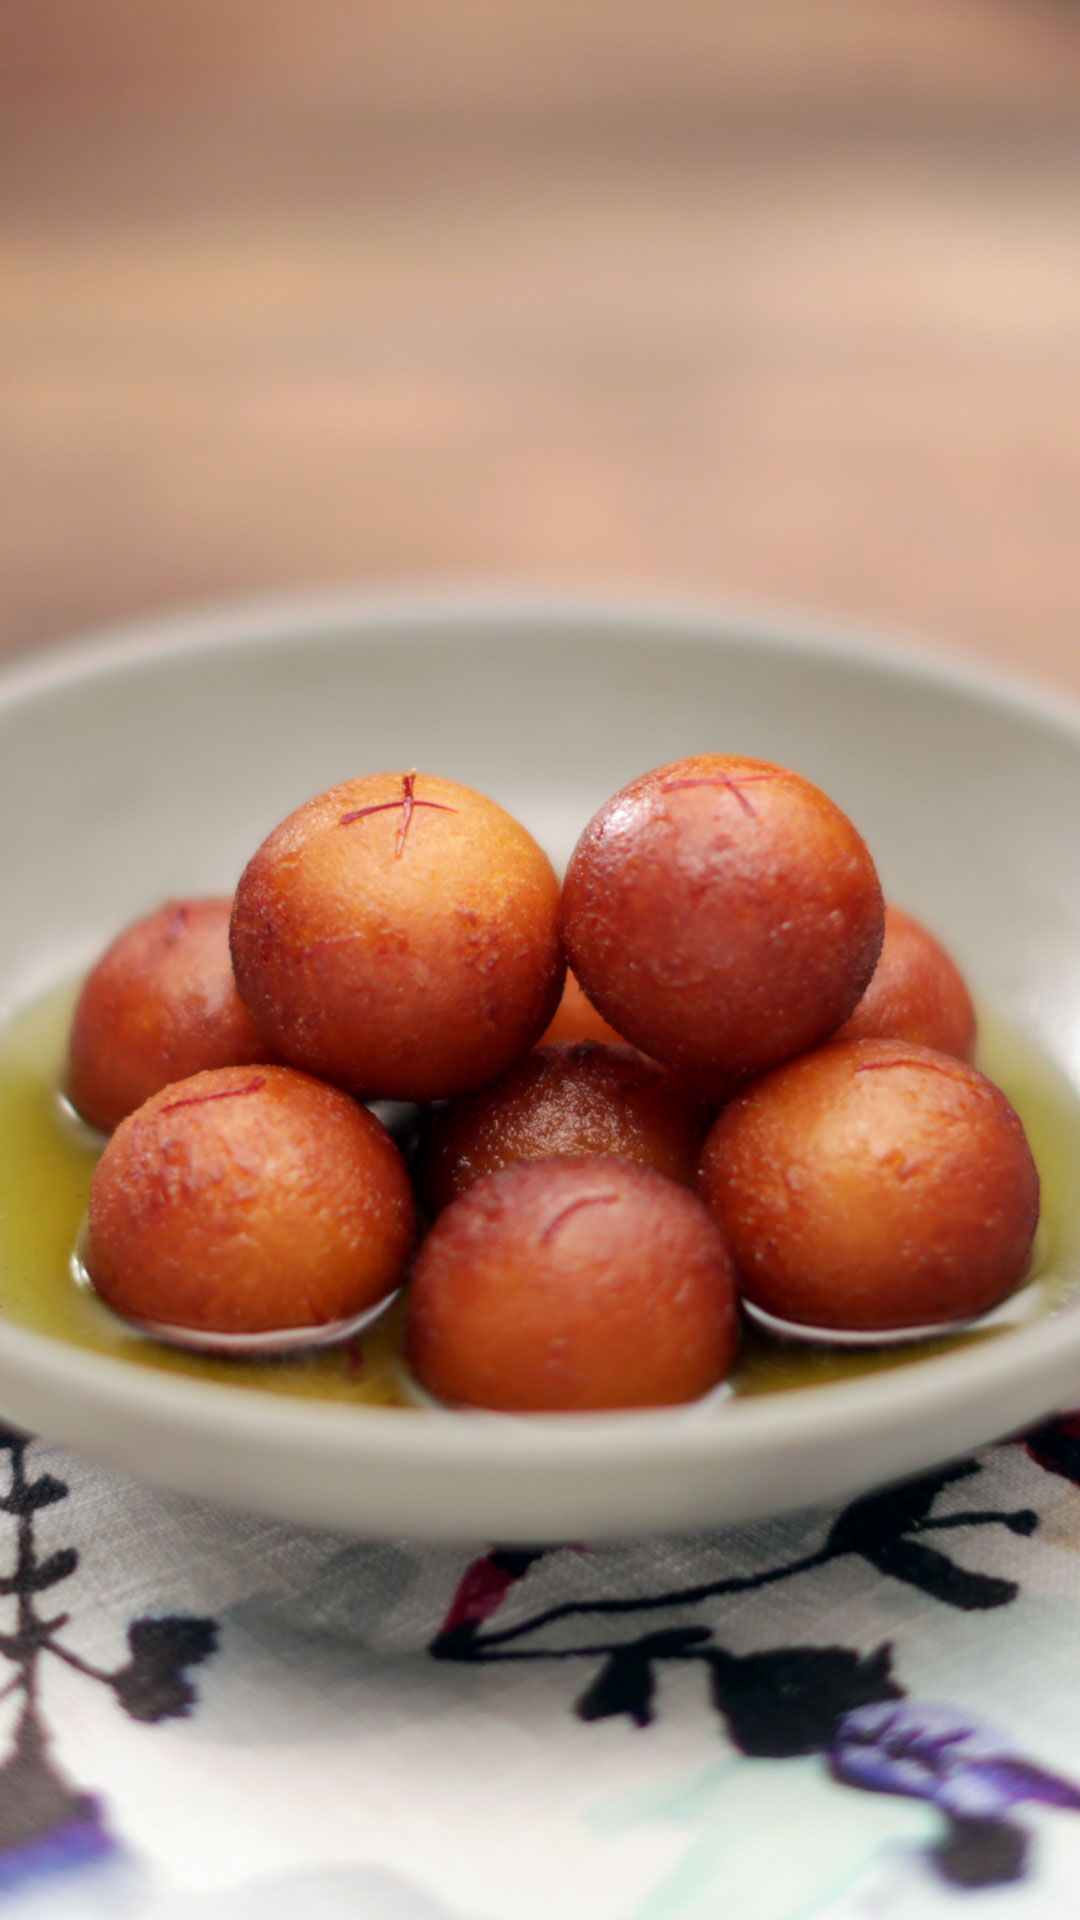 Soaked in sweet syrup, these Indian-style doughnuts can be enjoyed warm, hot or cold!